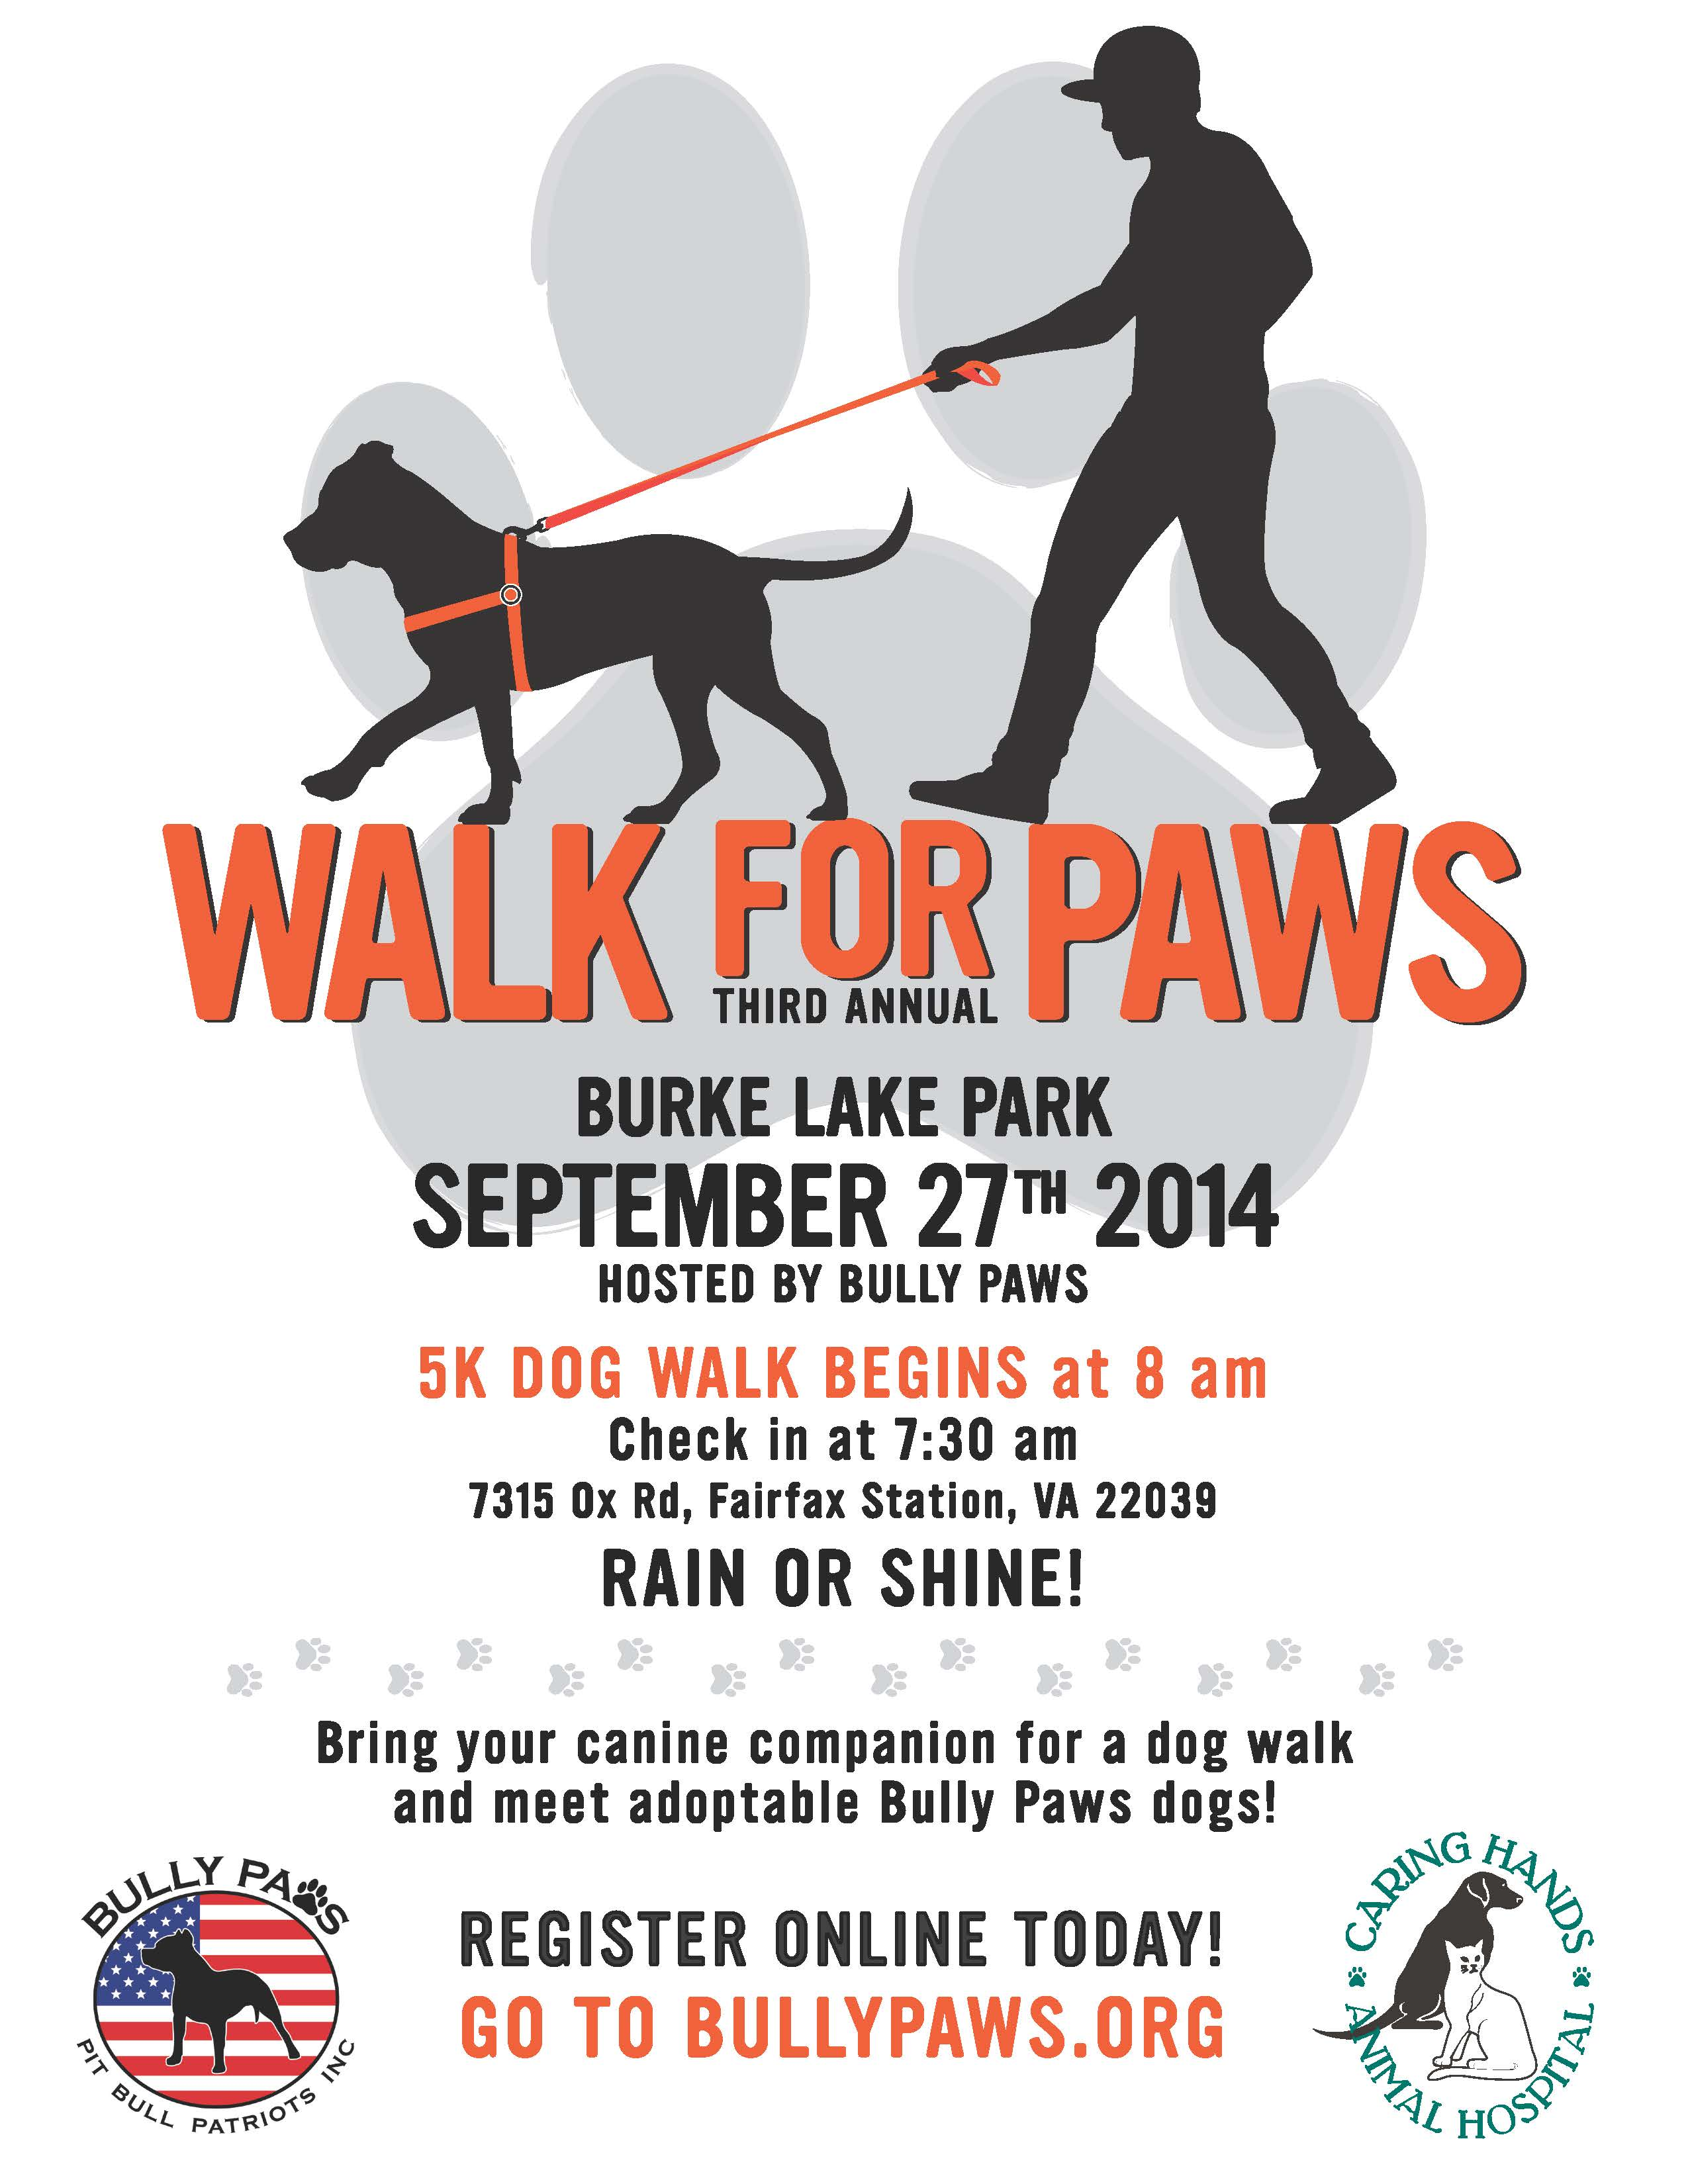 2014 Walk for Paws 5k Flyer